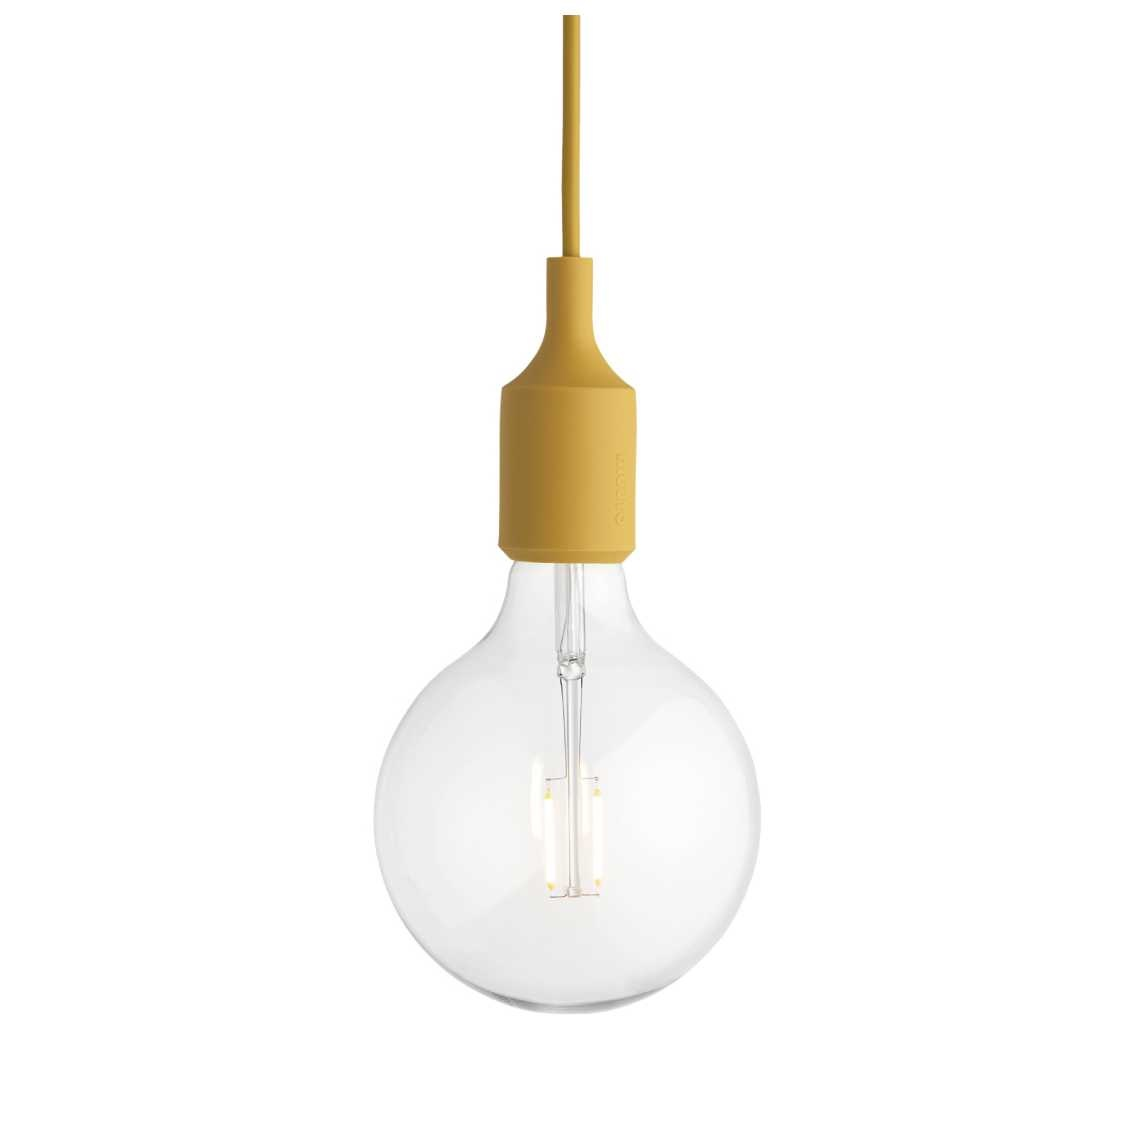 sports shoes 8a5c3 64677 E27 PENDANT LAMP FORM US WITH LOVE